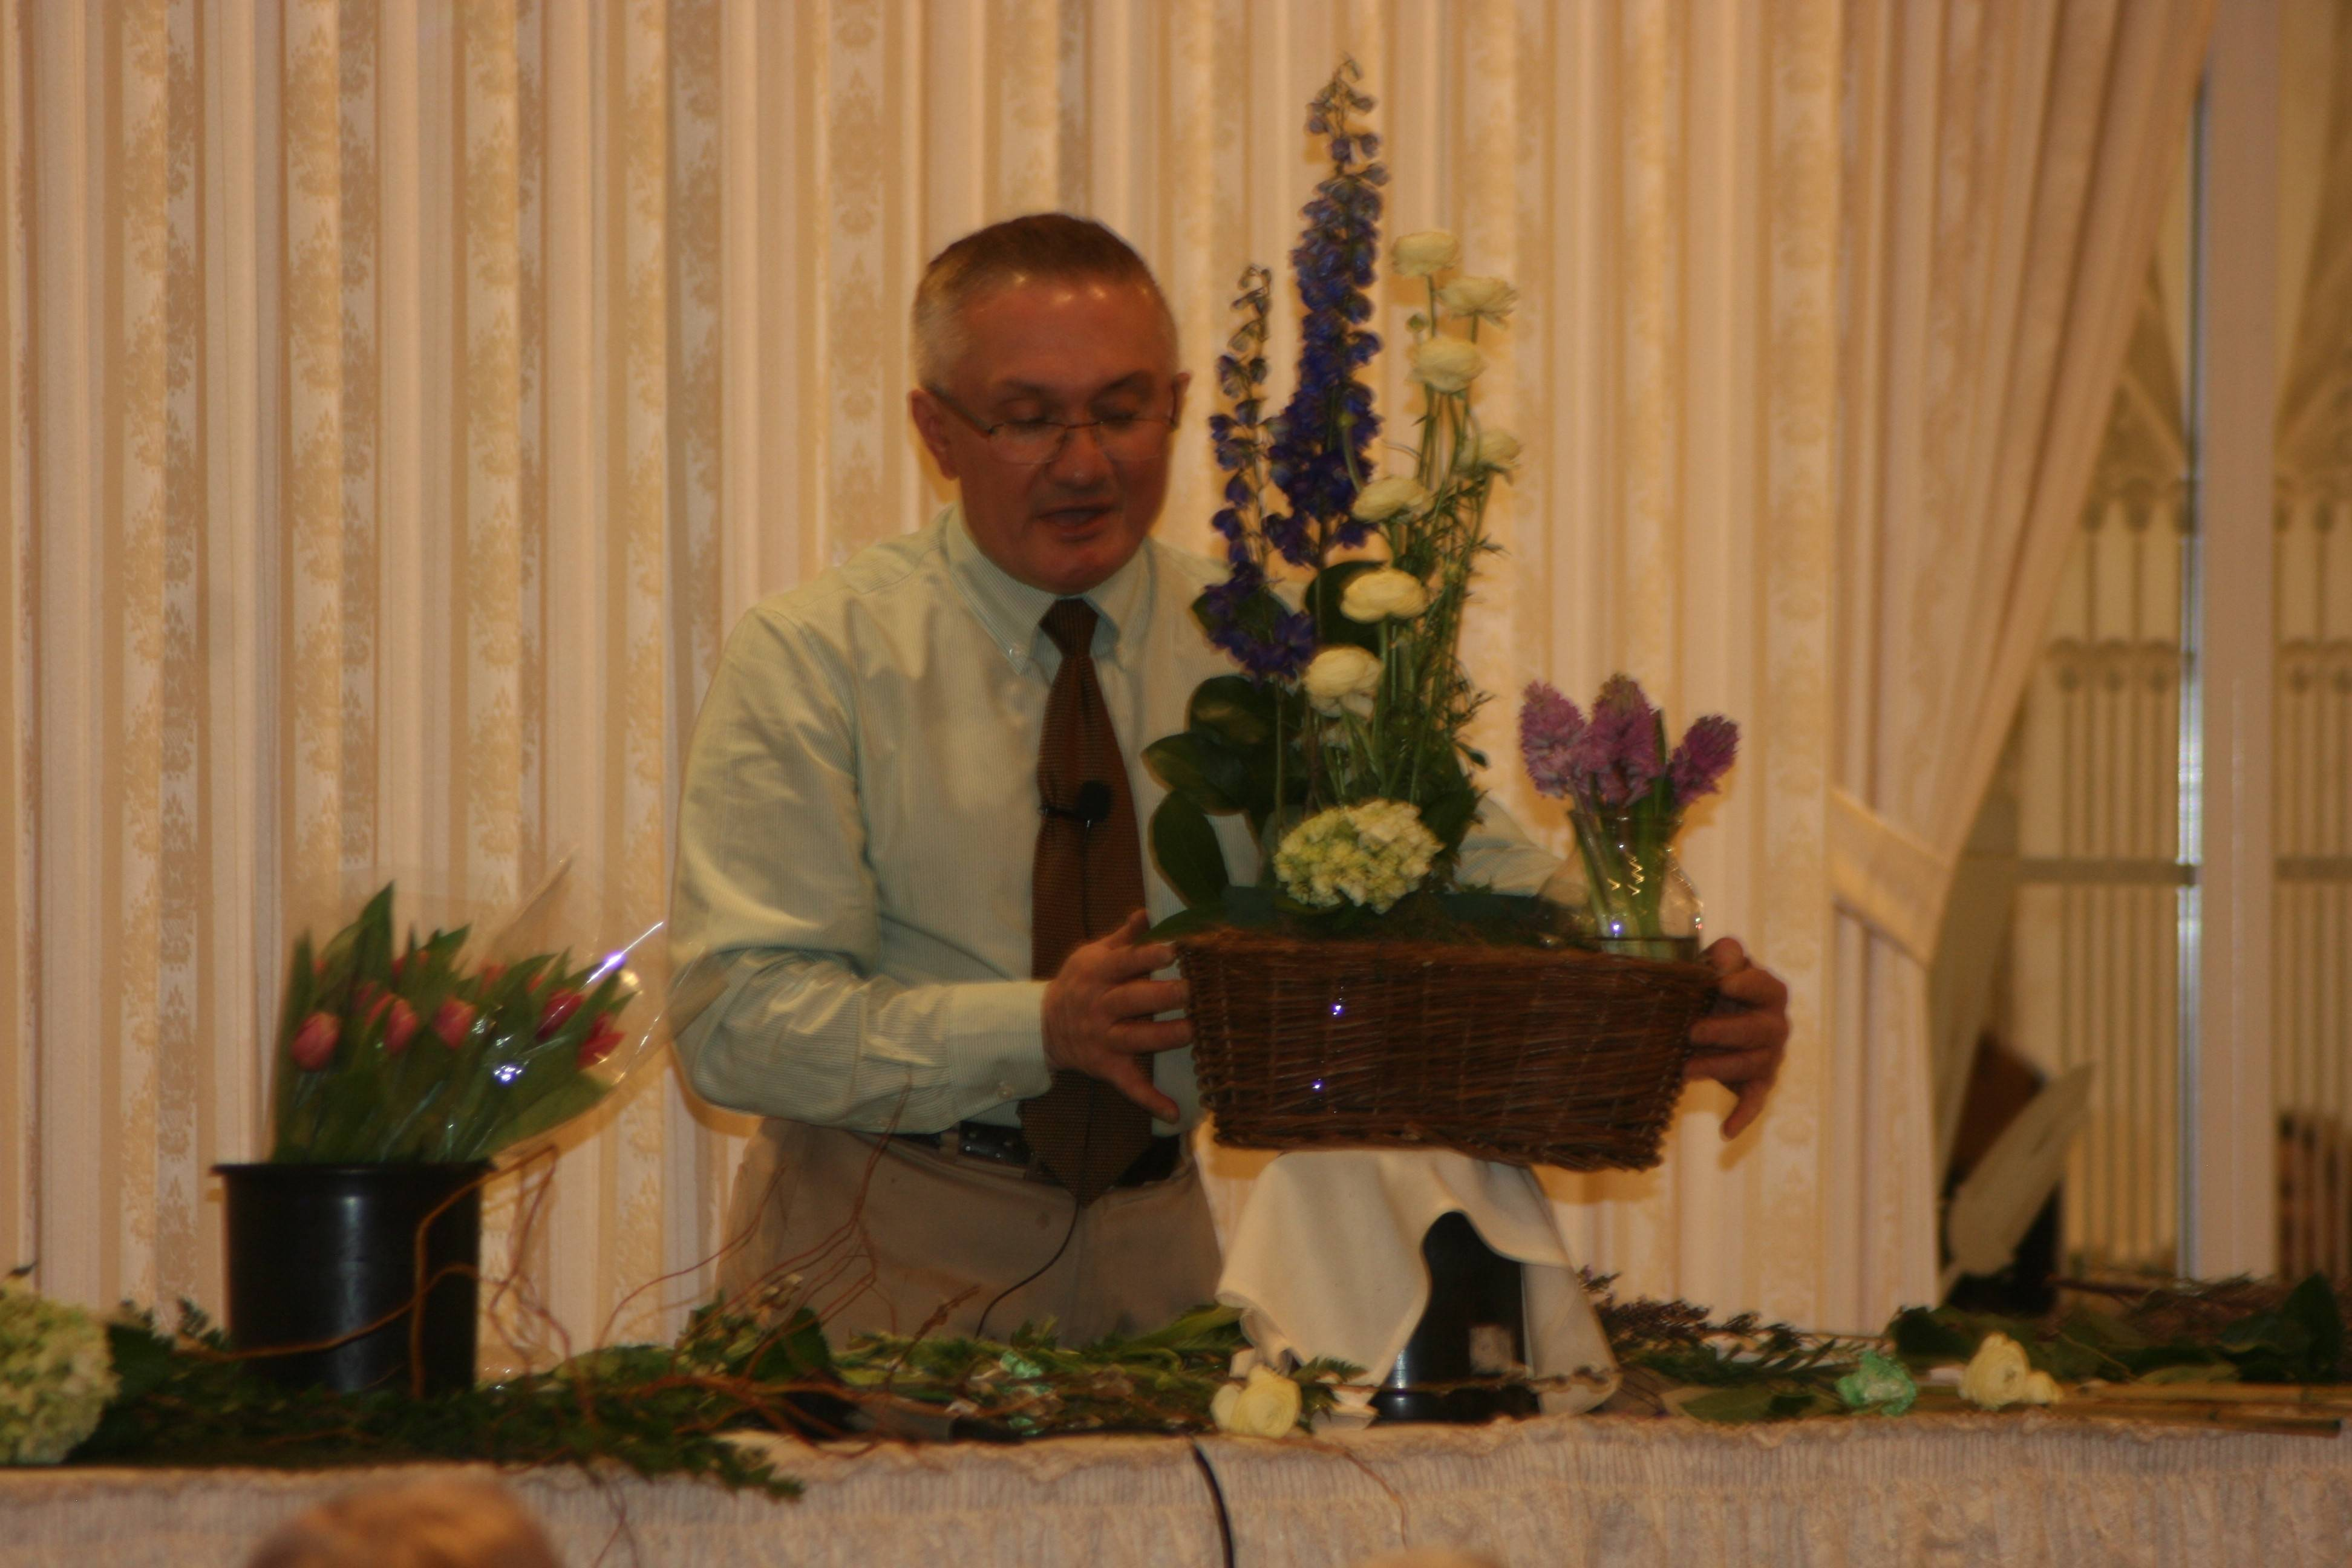 Des Plaines Garden Club wins awards